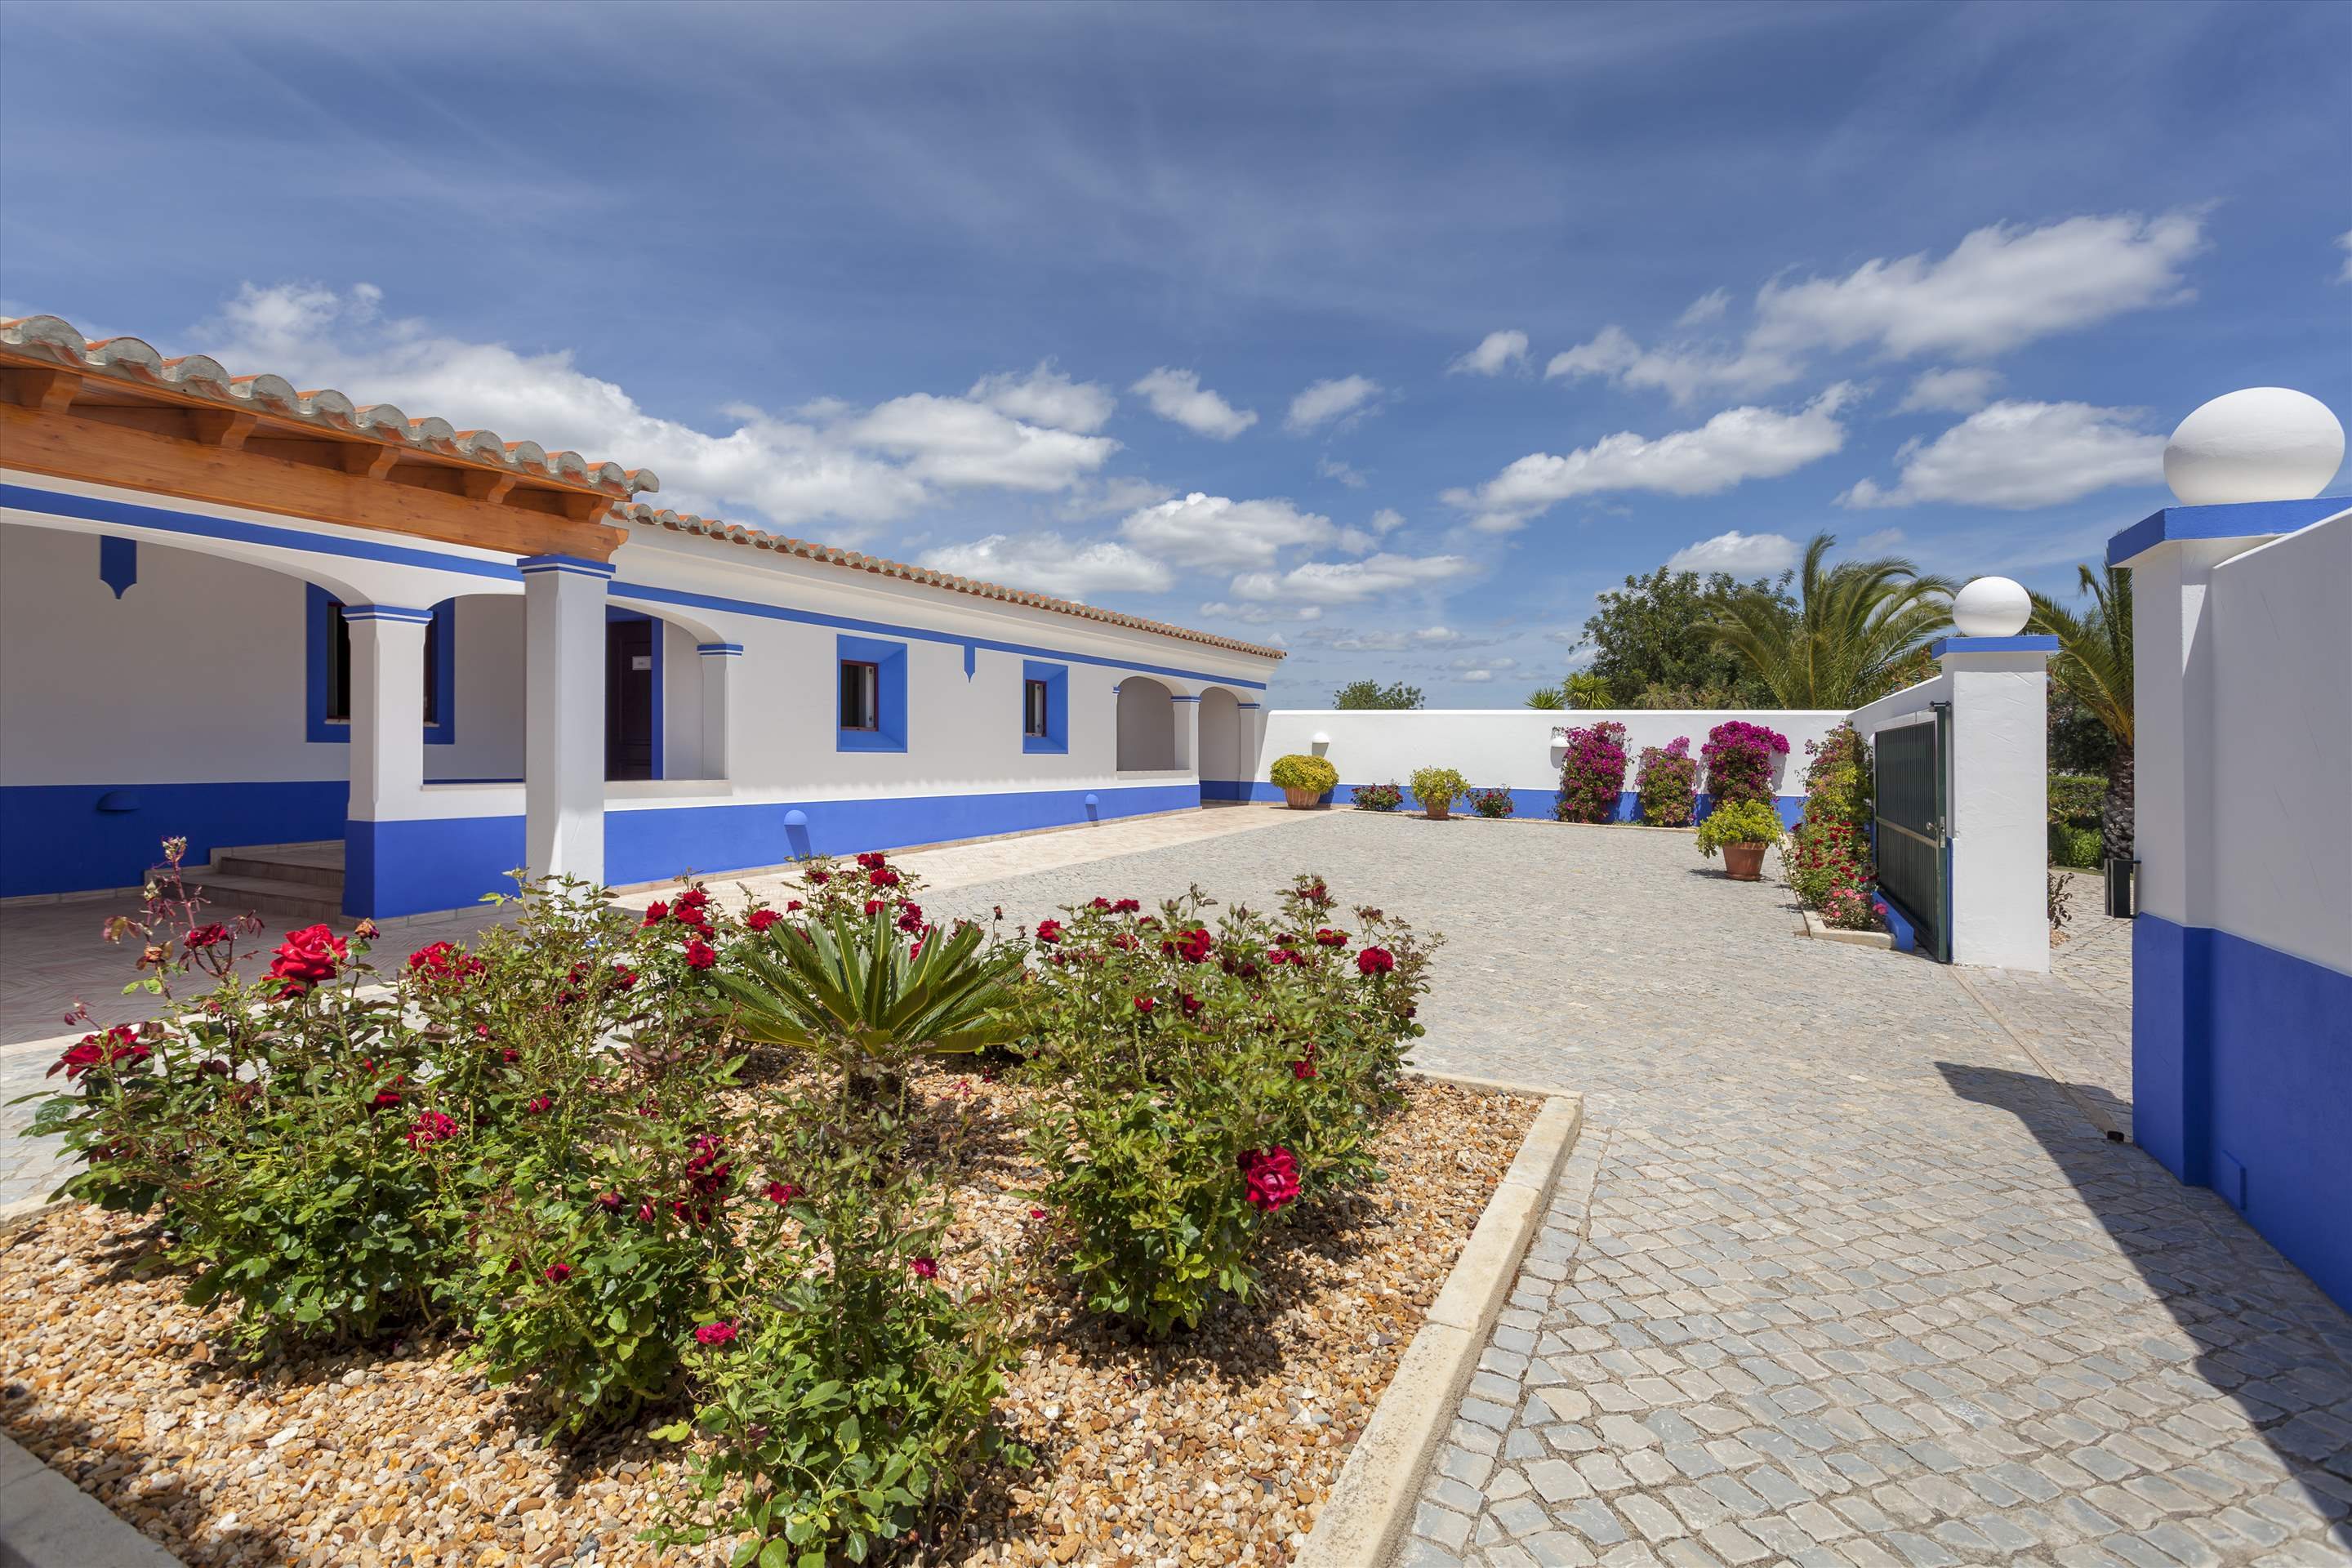 Casa Cahombo, 5 bedroom rate for 7-10 persons, 5 bedroom villa in Vilamoura Area, Algarve Photo #20